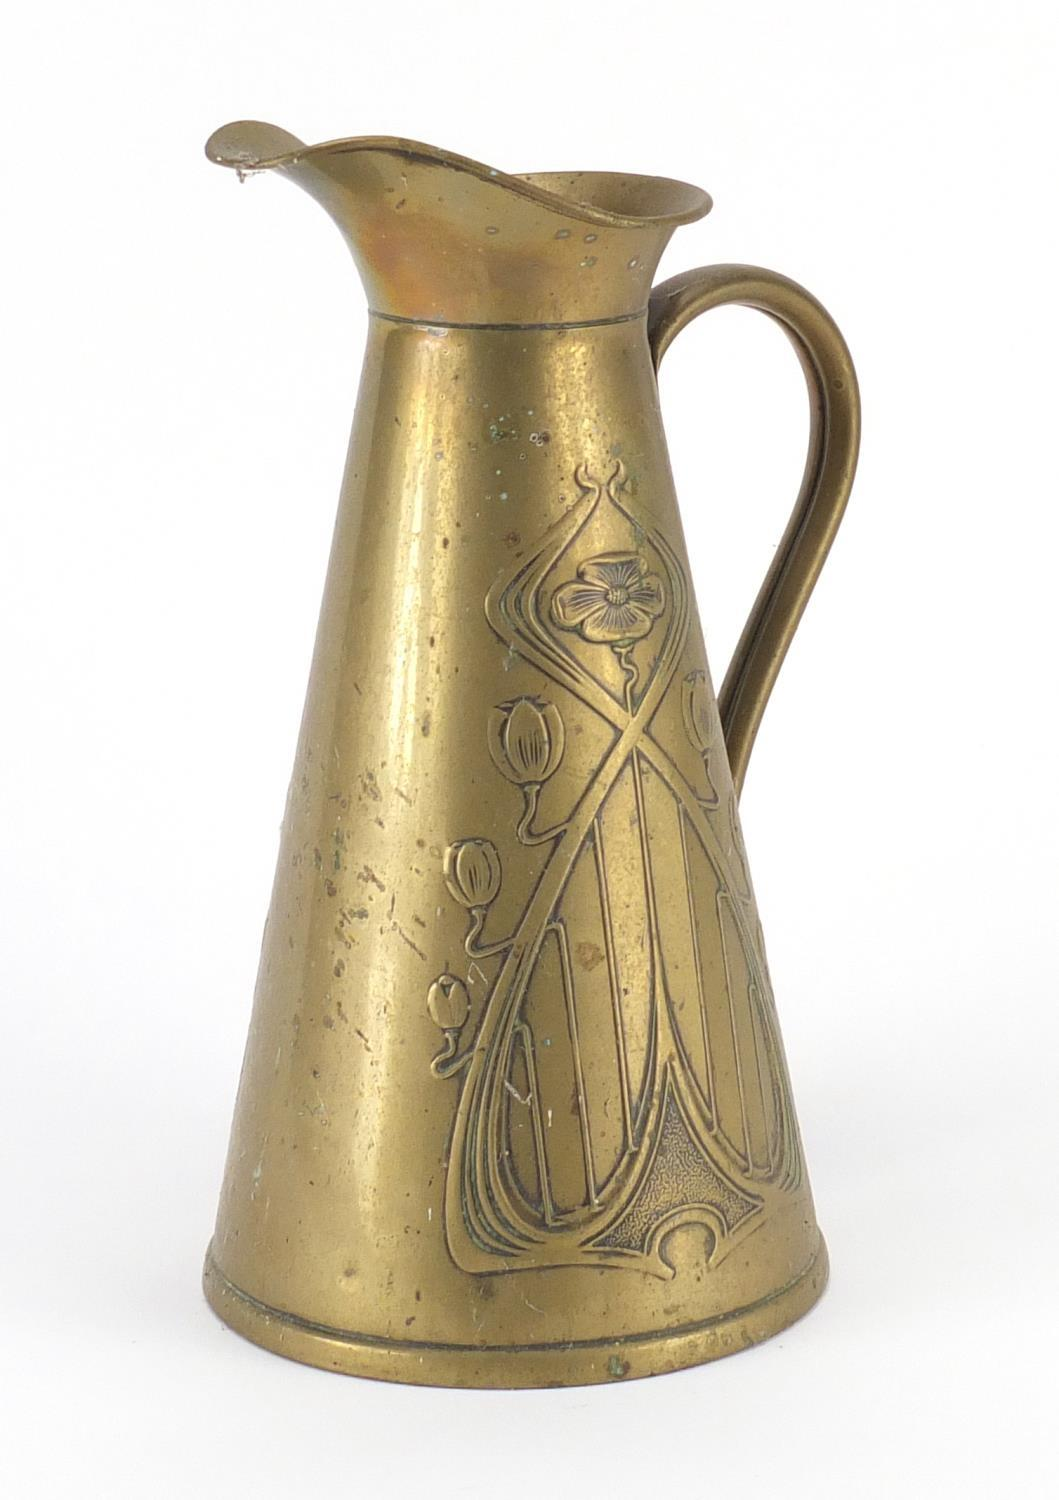 Lot 200 - Art Nouveau brass flagon embossed with stylised flowers, impressed J S & S to the base, 29cm